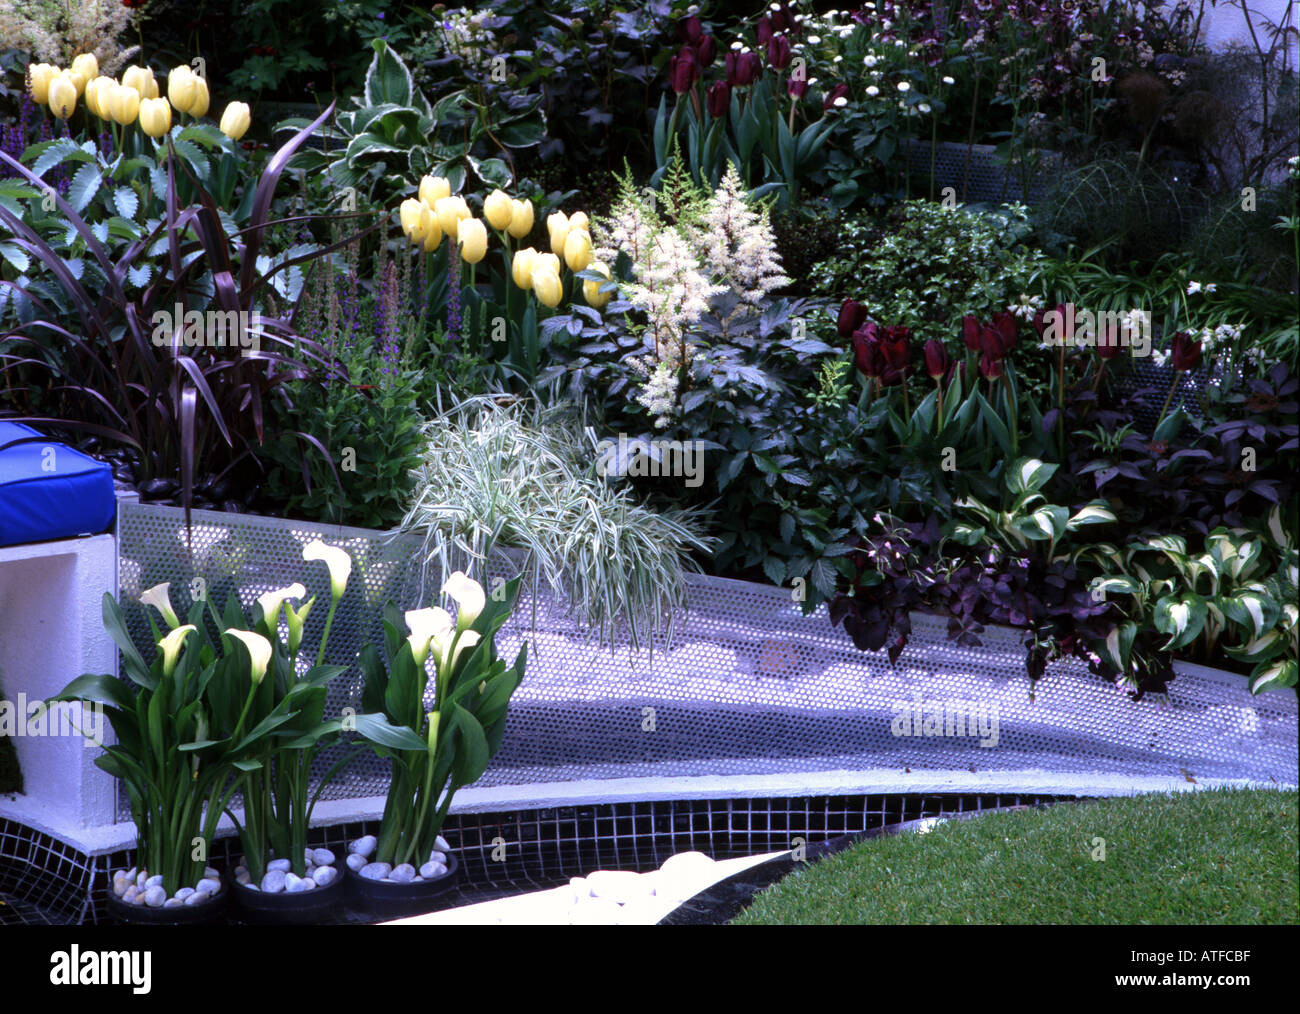 Tulips and Arum lily in the Football coming haome garden Chelsea Flower Show 2004 - Stock Image